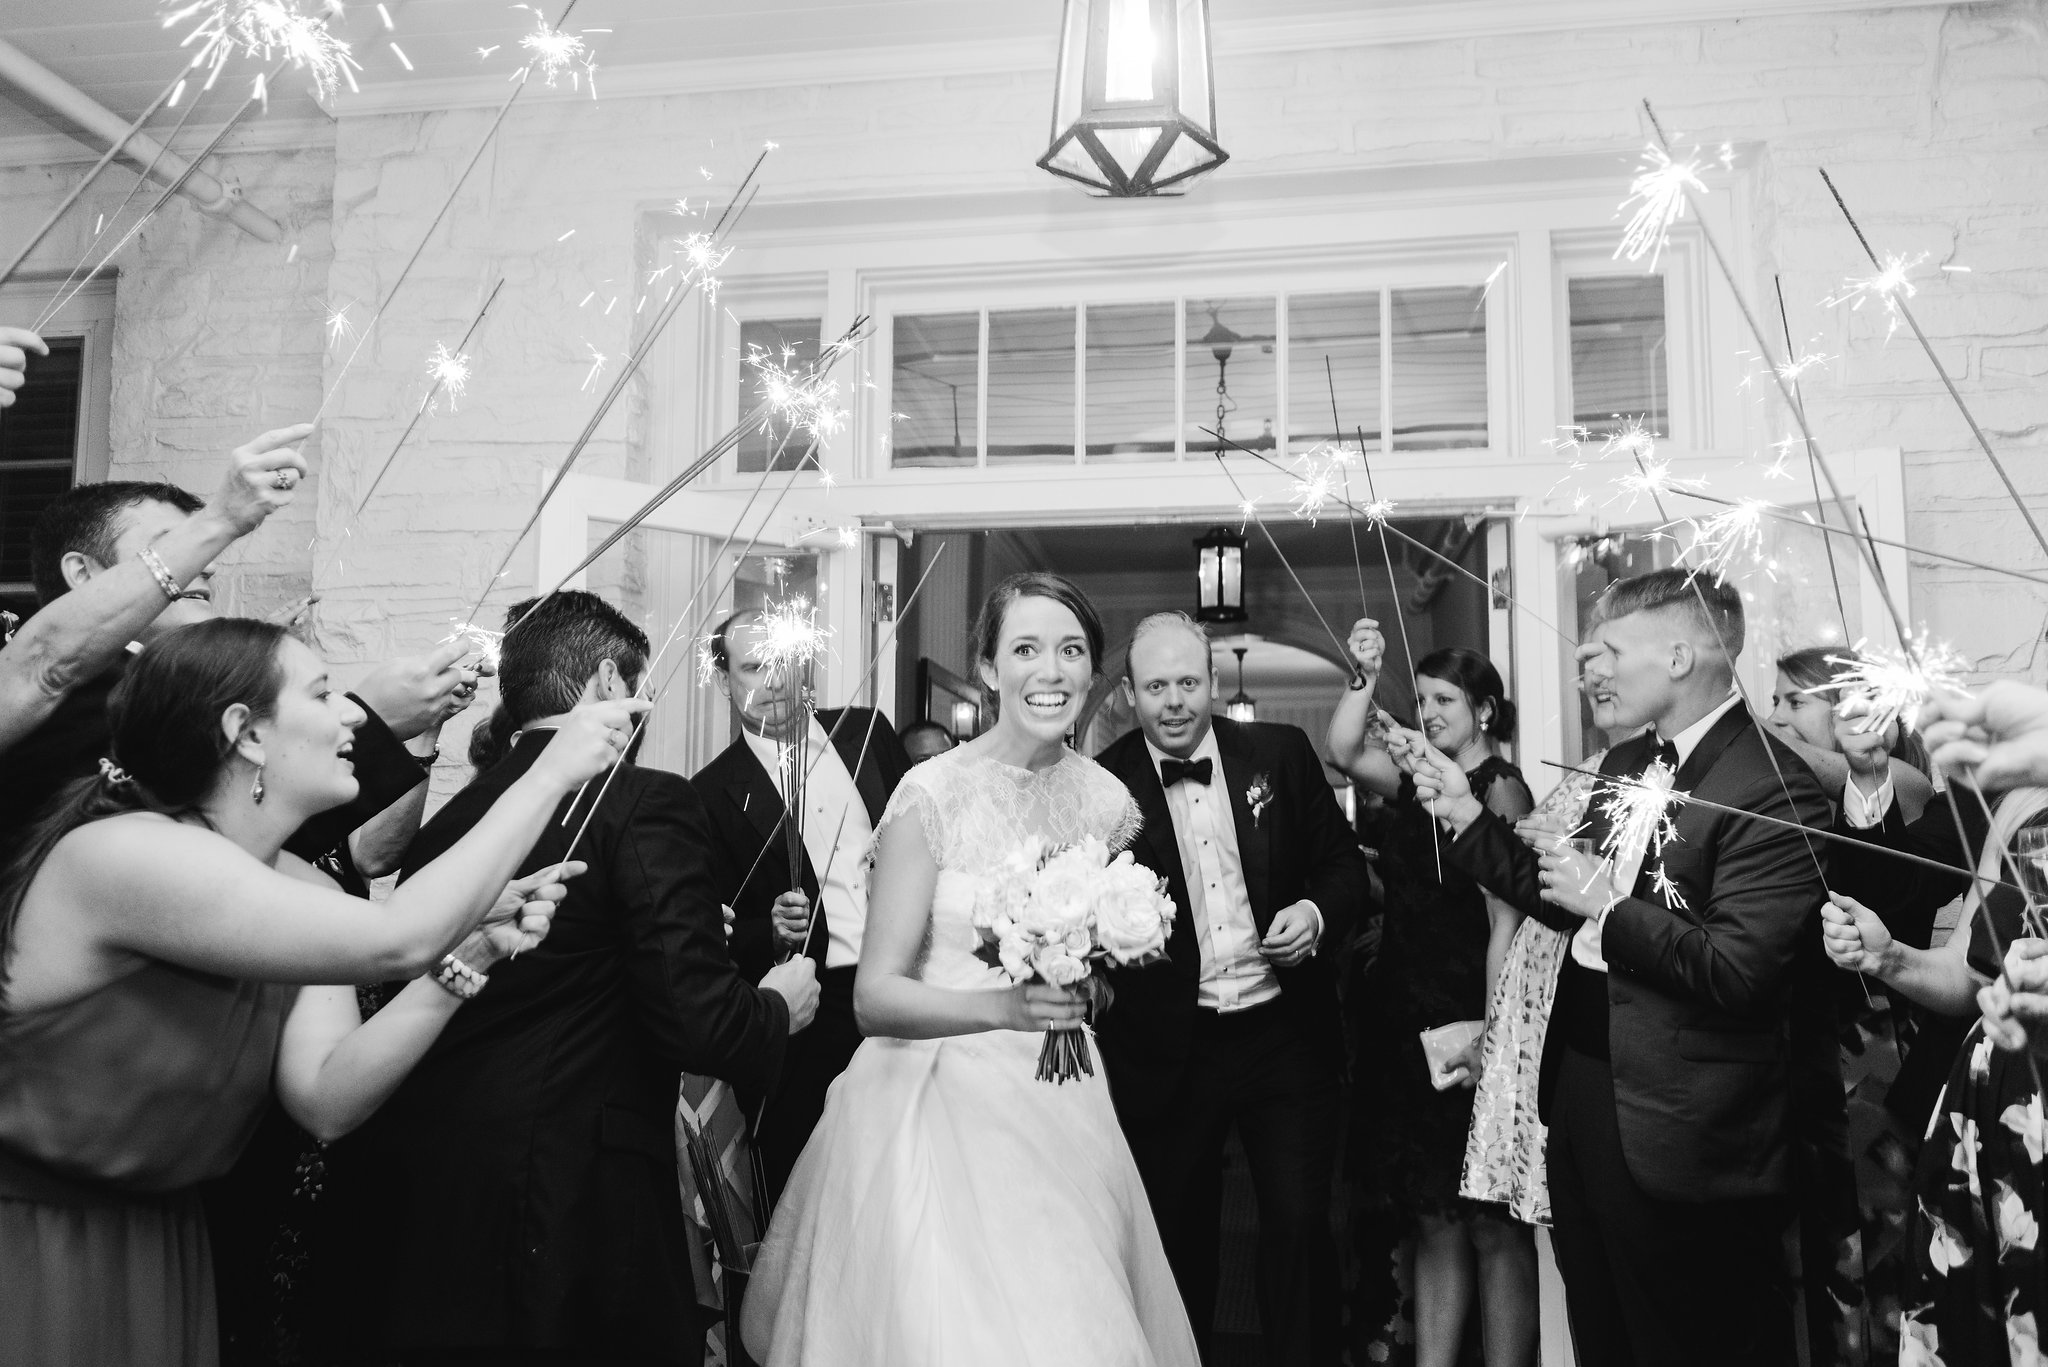 North Carolina Wedding, Events by Reagan, Destination Wedding Planner, Bride and Groom, Sparklers